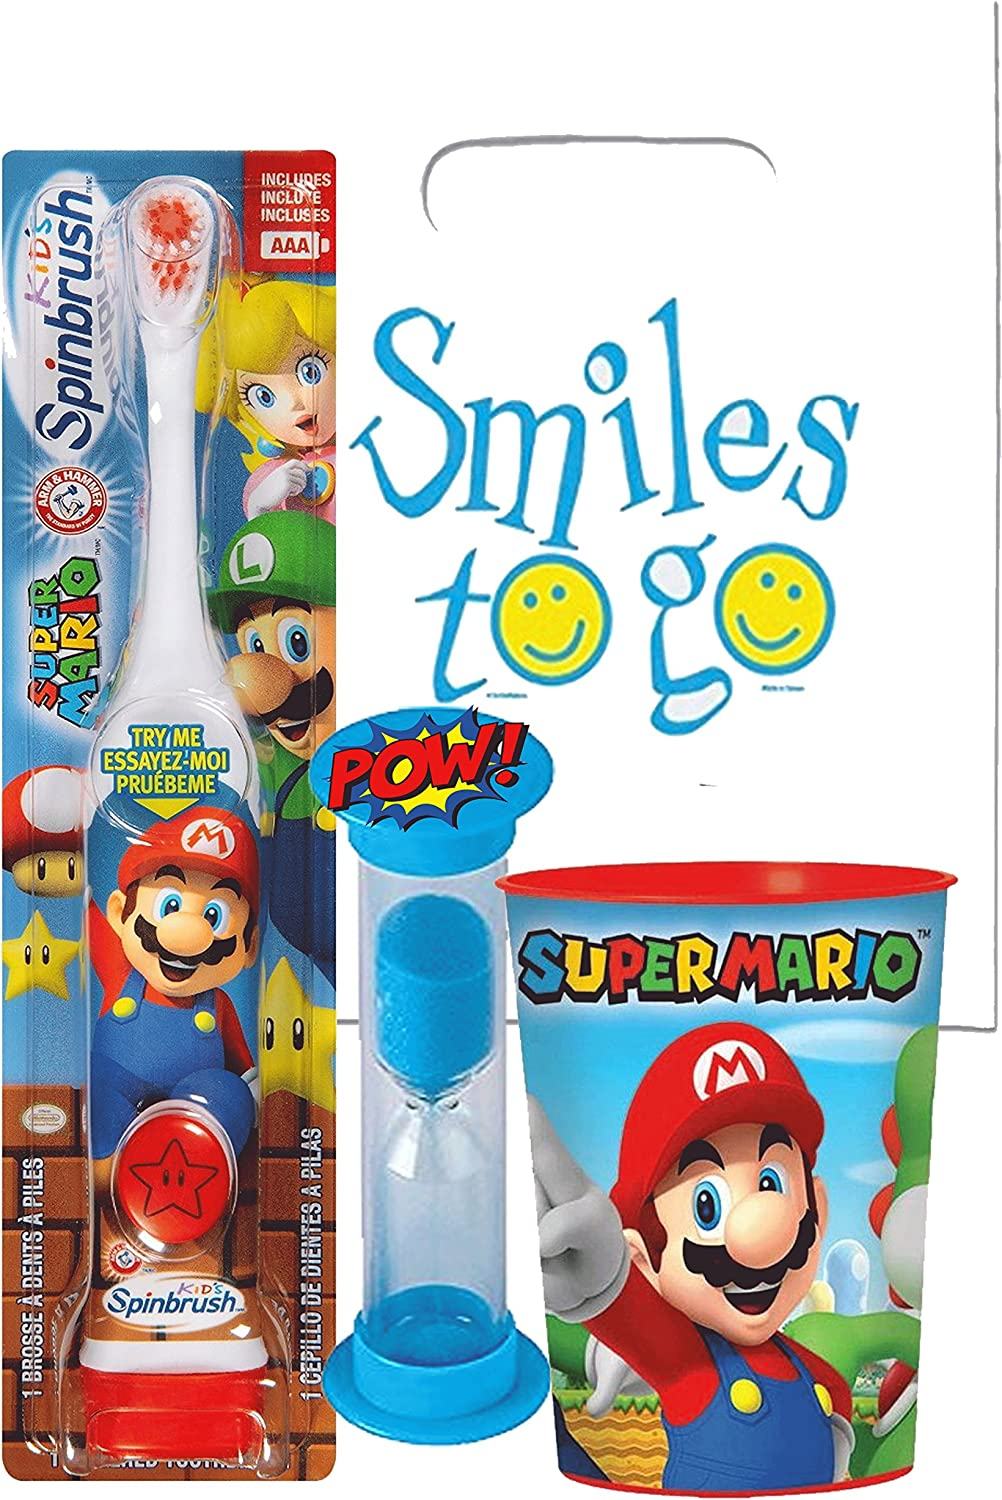 Super Mario Brothers 3pc Bright Smile Oral Hygiene Bundle! Turbo Spin Toothbrush, Brushing Timer & Mouthwash Rinse Cup! Plus Dental Gift Bag & Tooth